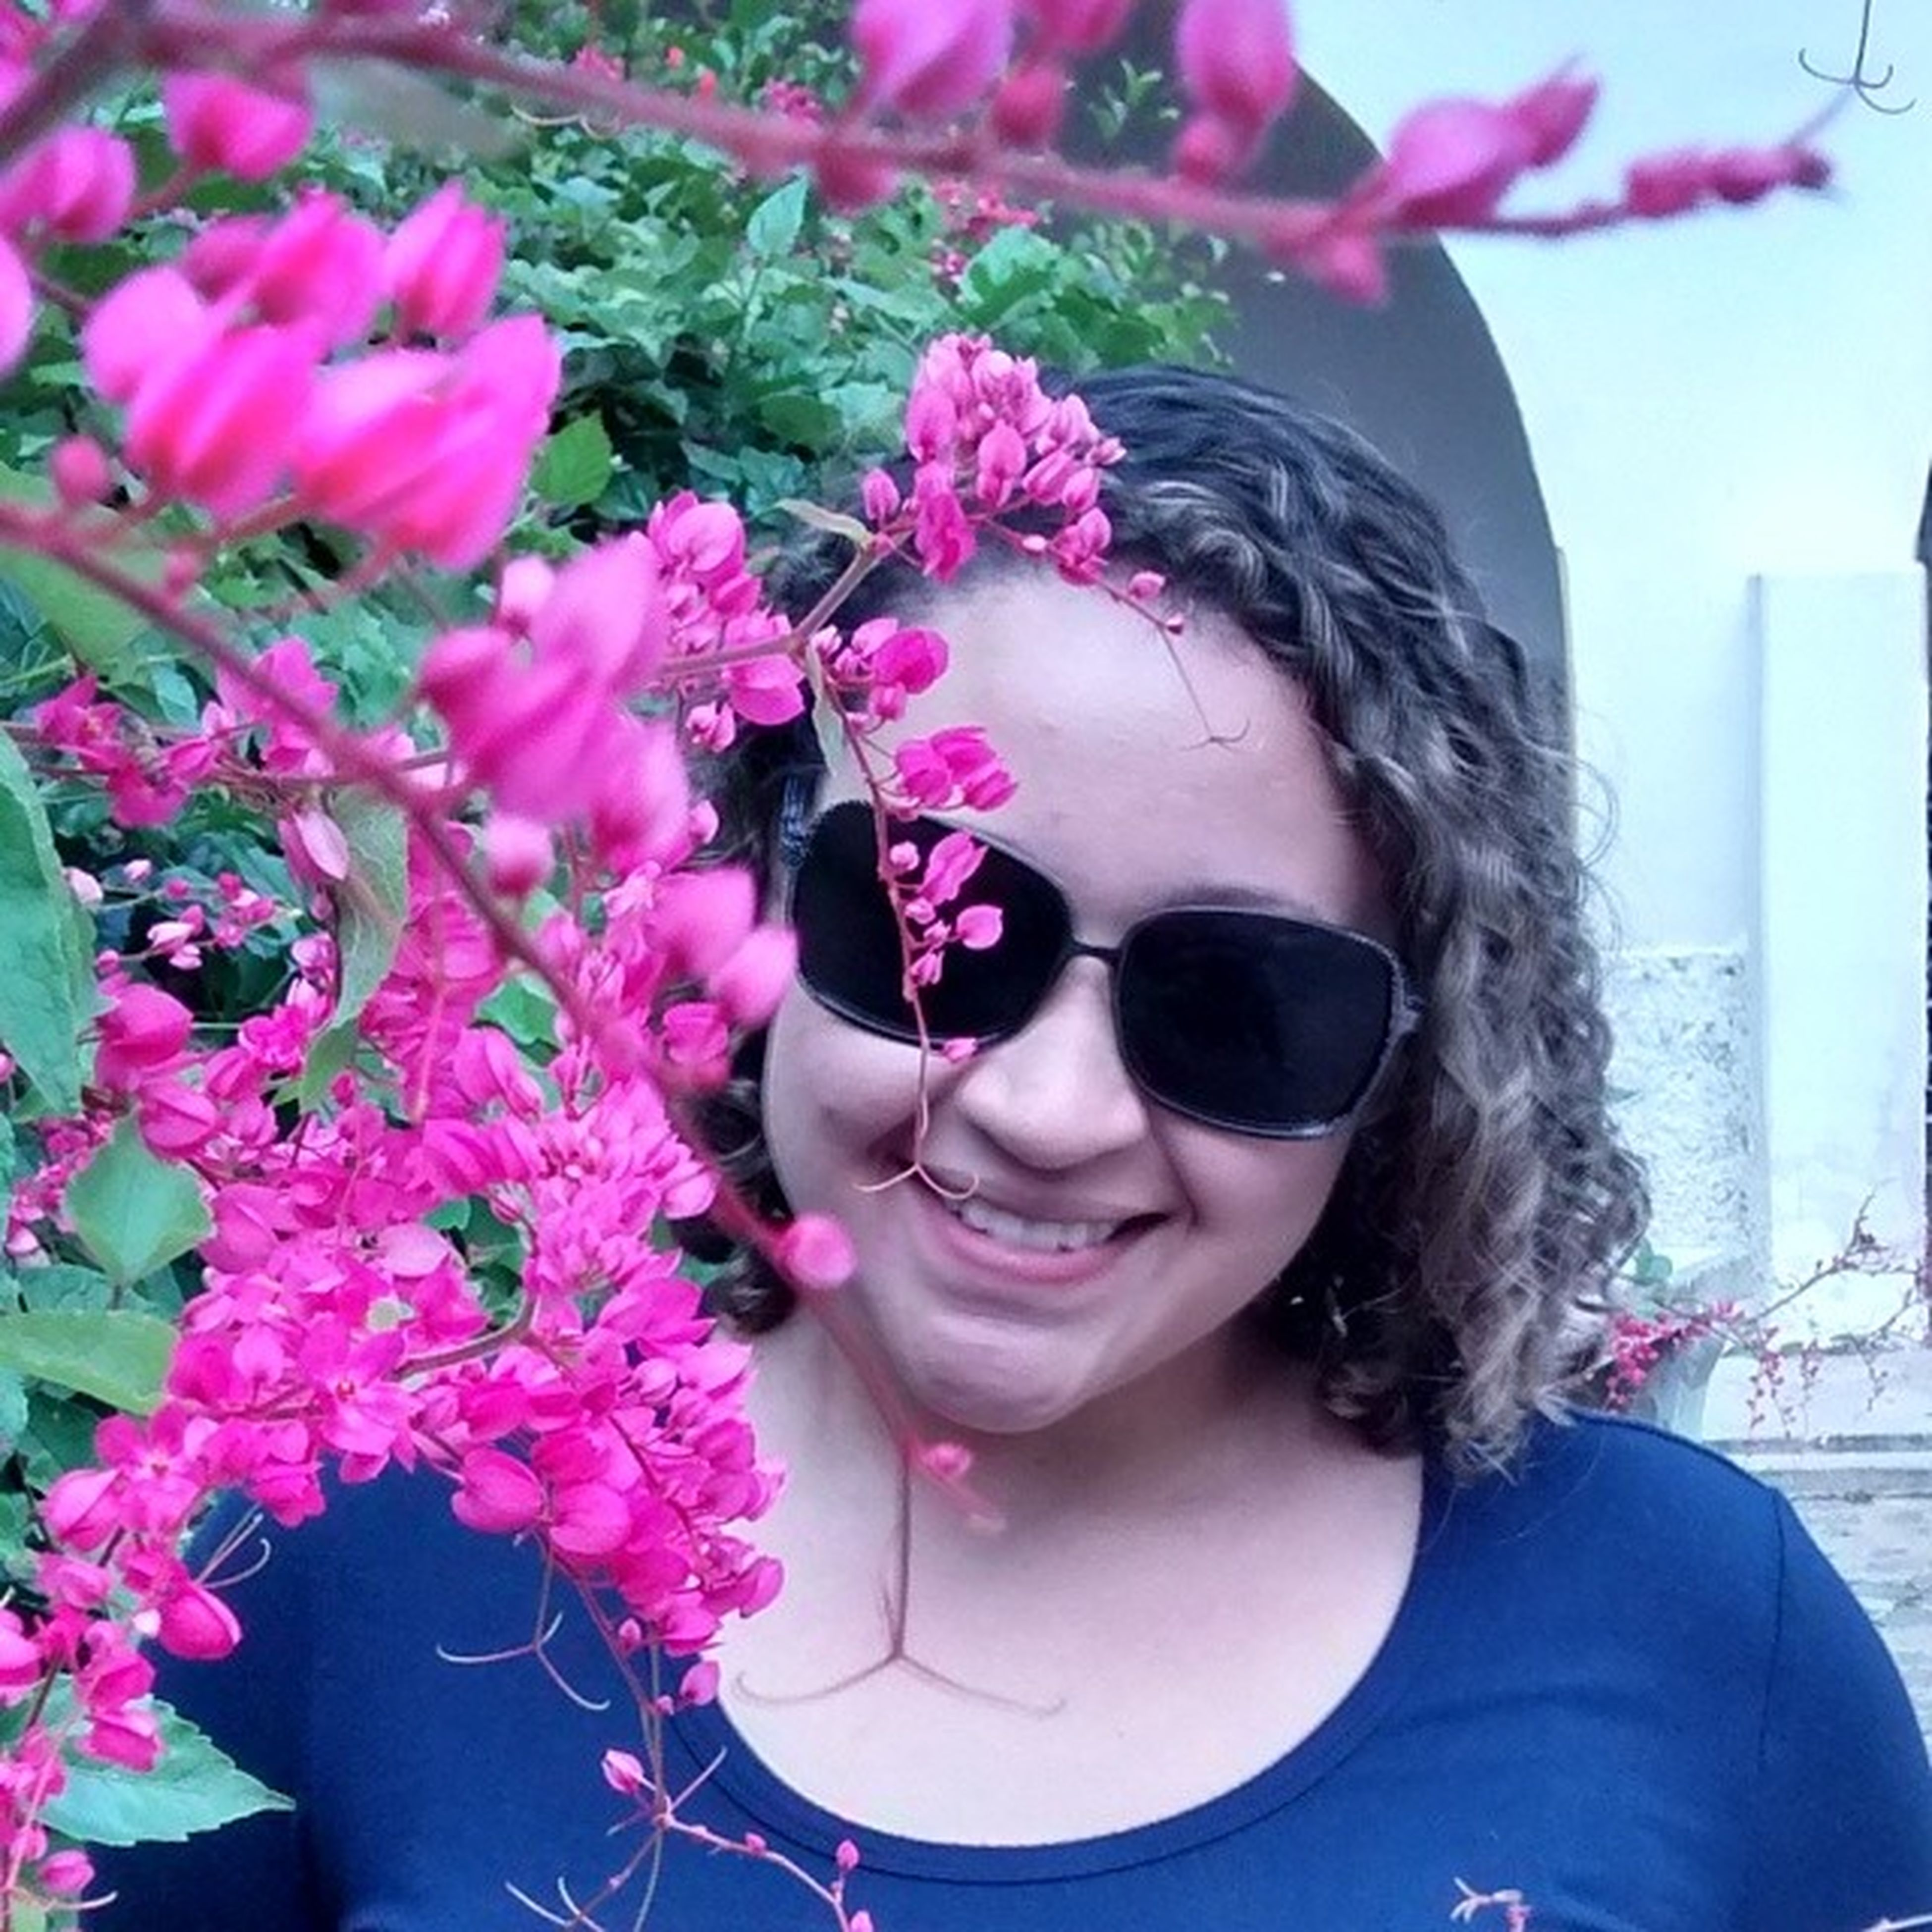 flower, headshot, person, portrait, looking at camera, lifestyles, leisure activity, young adult, front view, young women, close-up, smiling, pink color, childhood, girls, day, casual clothing, focus on foreground